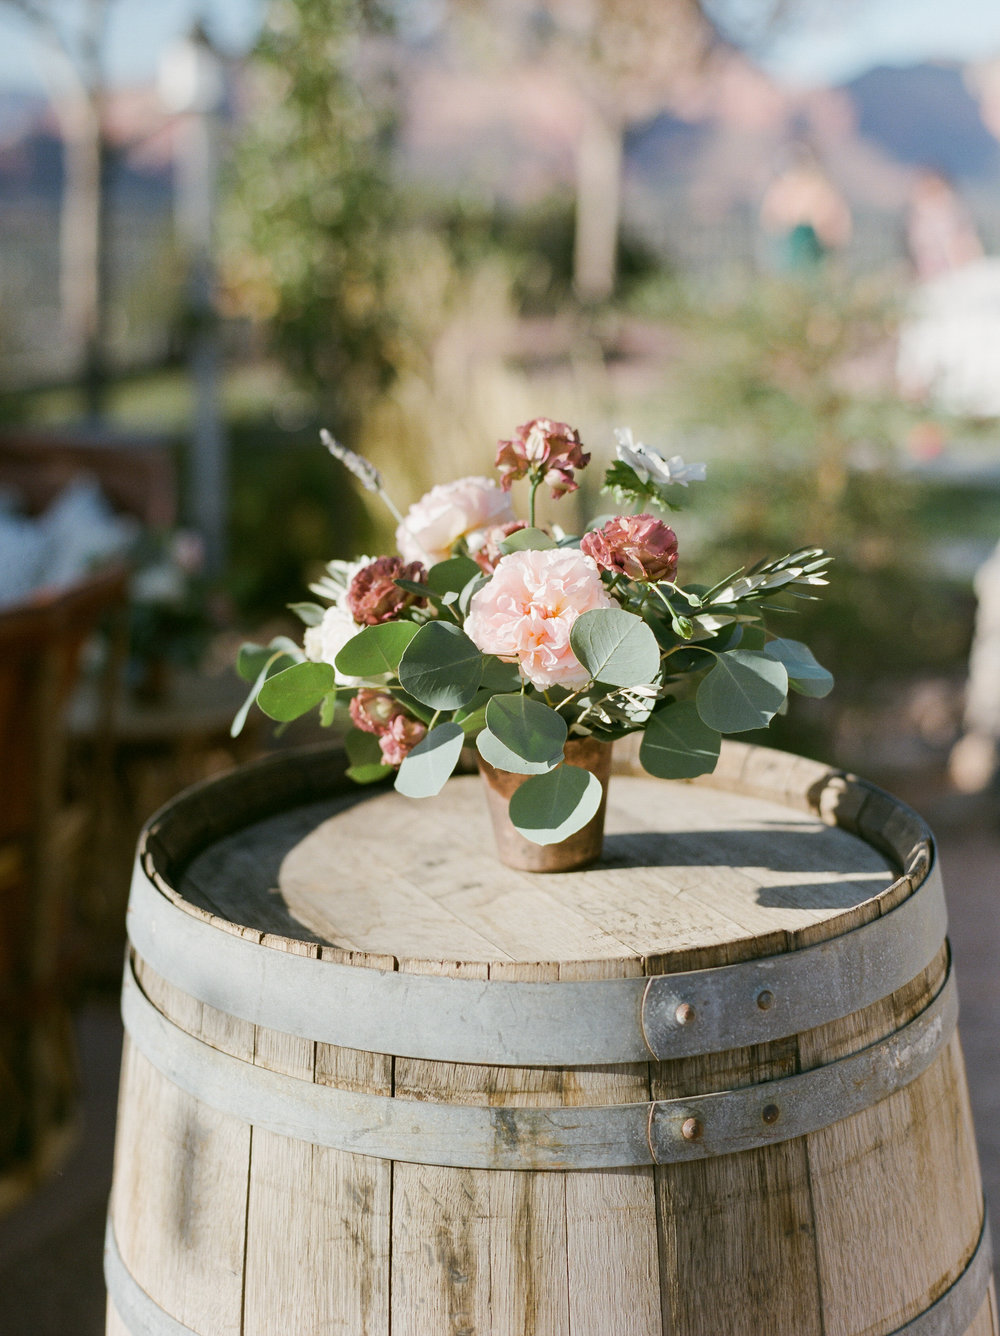 An Intimate Sedona Wedding Nestled in the Arizona Red Rocks  - Tremaine Ranch - AZ Arizona Wedding & Event, Vintage, Furniture, Tableware, & Specialty Rentals in Phoenix, Tucson, Flagstaff, Sedona, Tempe, Chandler, Mesa, Gilbert, Prescott, Payson 560.jpg